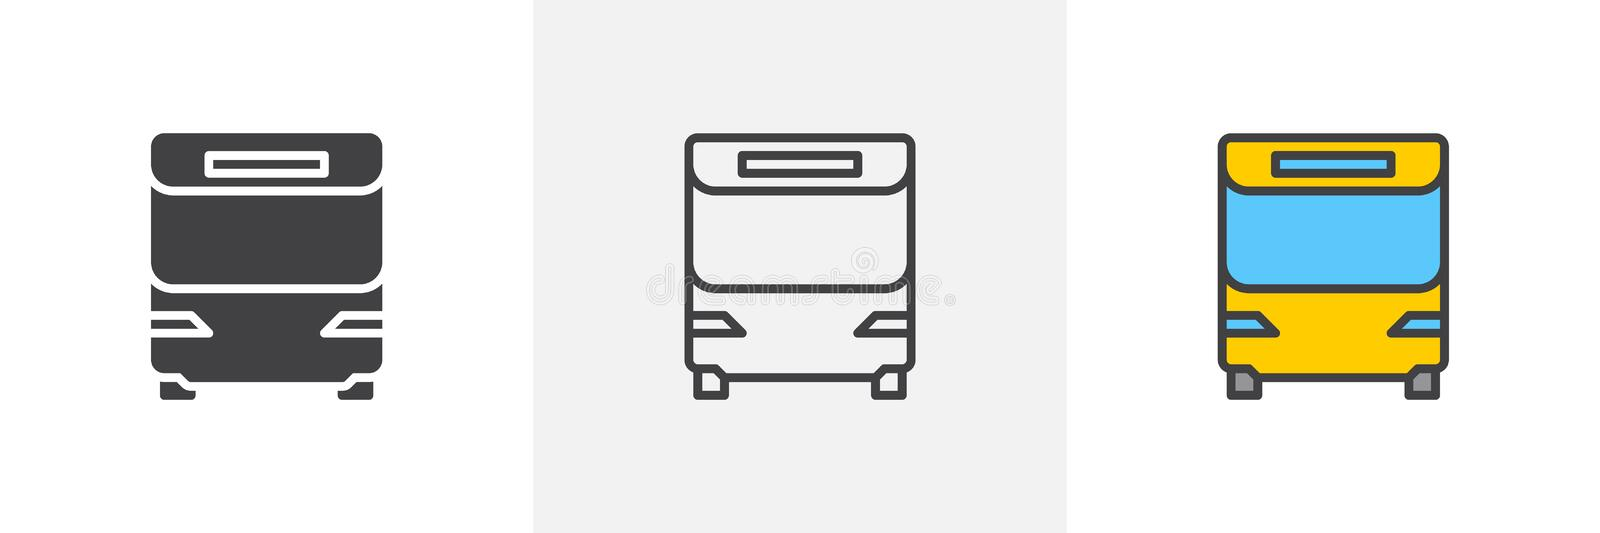 Travel Bus icon royalty free illustration